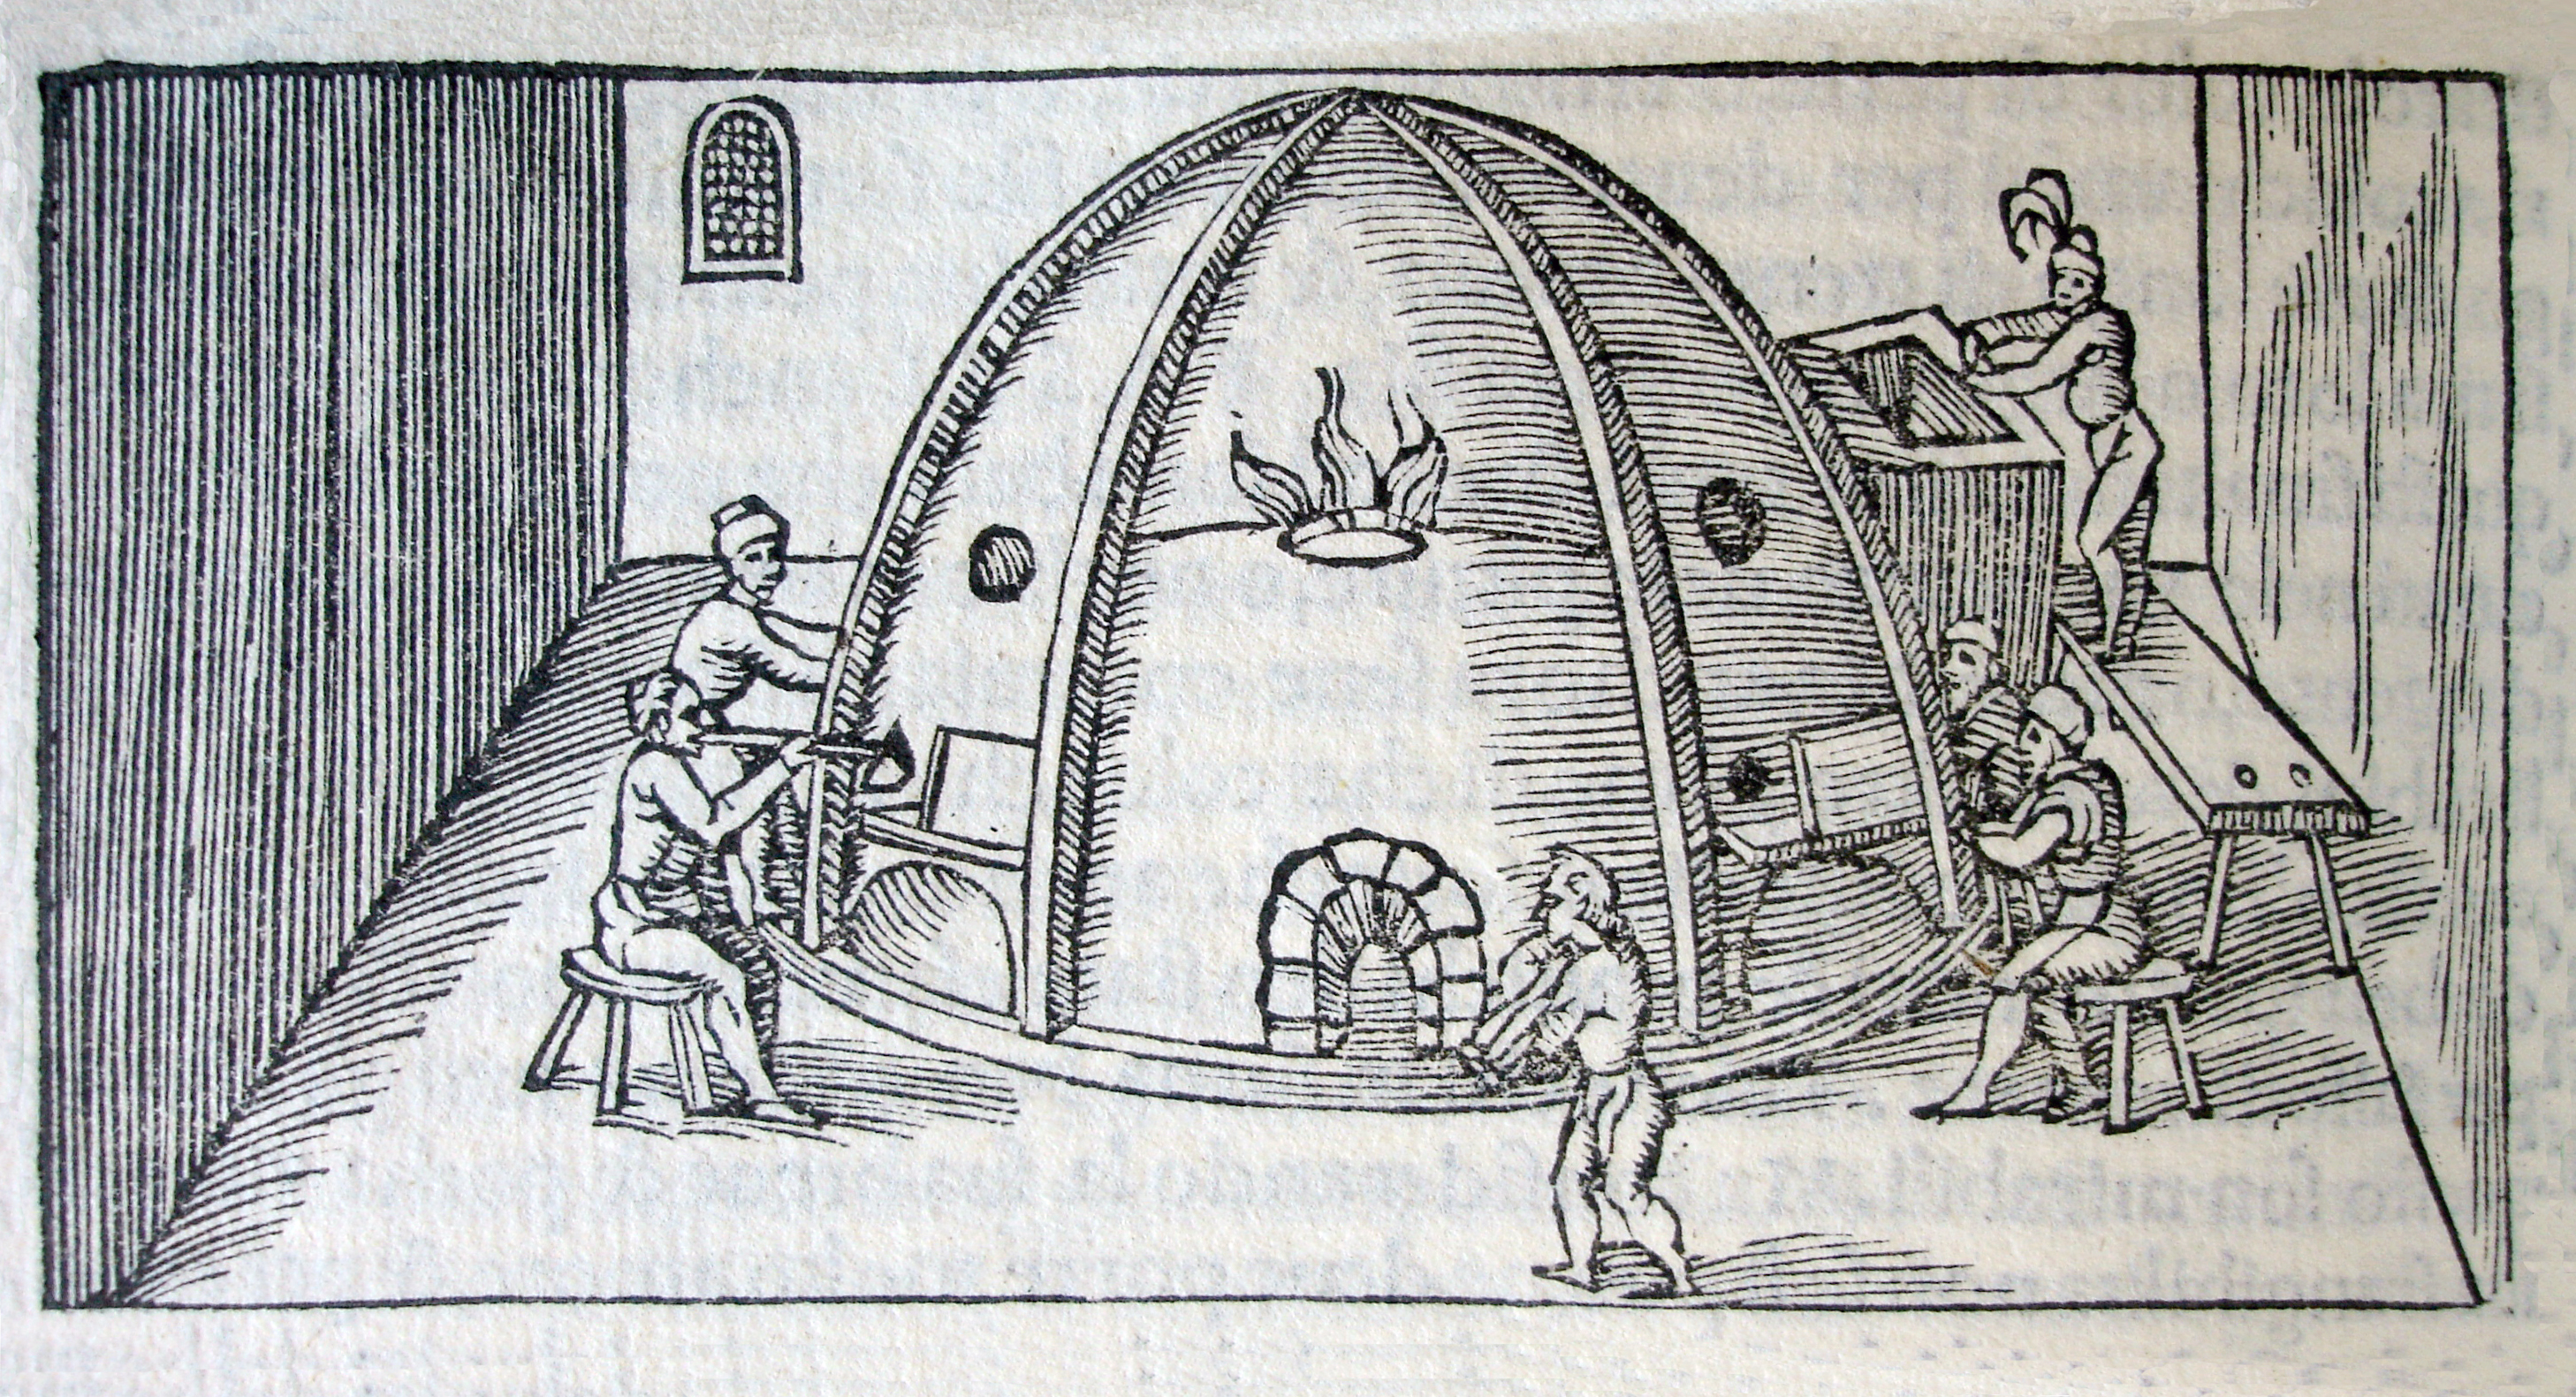 FIG. 37. Glass furnace, showing the upper annealing chamber. Vannoccio Biringuccio (Italian, 1480–1539). In De la pirotechnia, [Venice], 1540. Rakow Research Library, The Corning Museum of Glass (93699). Photo: The Corning Museum of Glass.